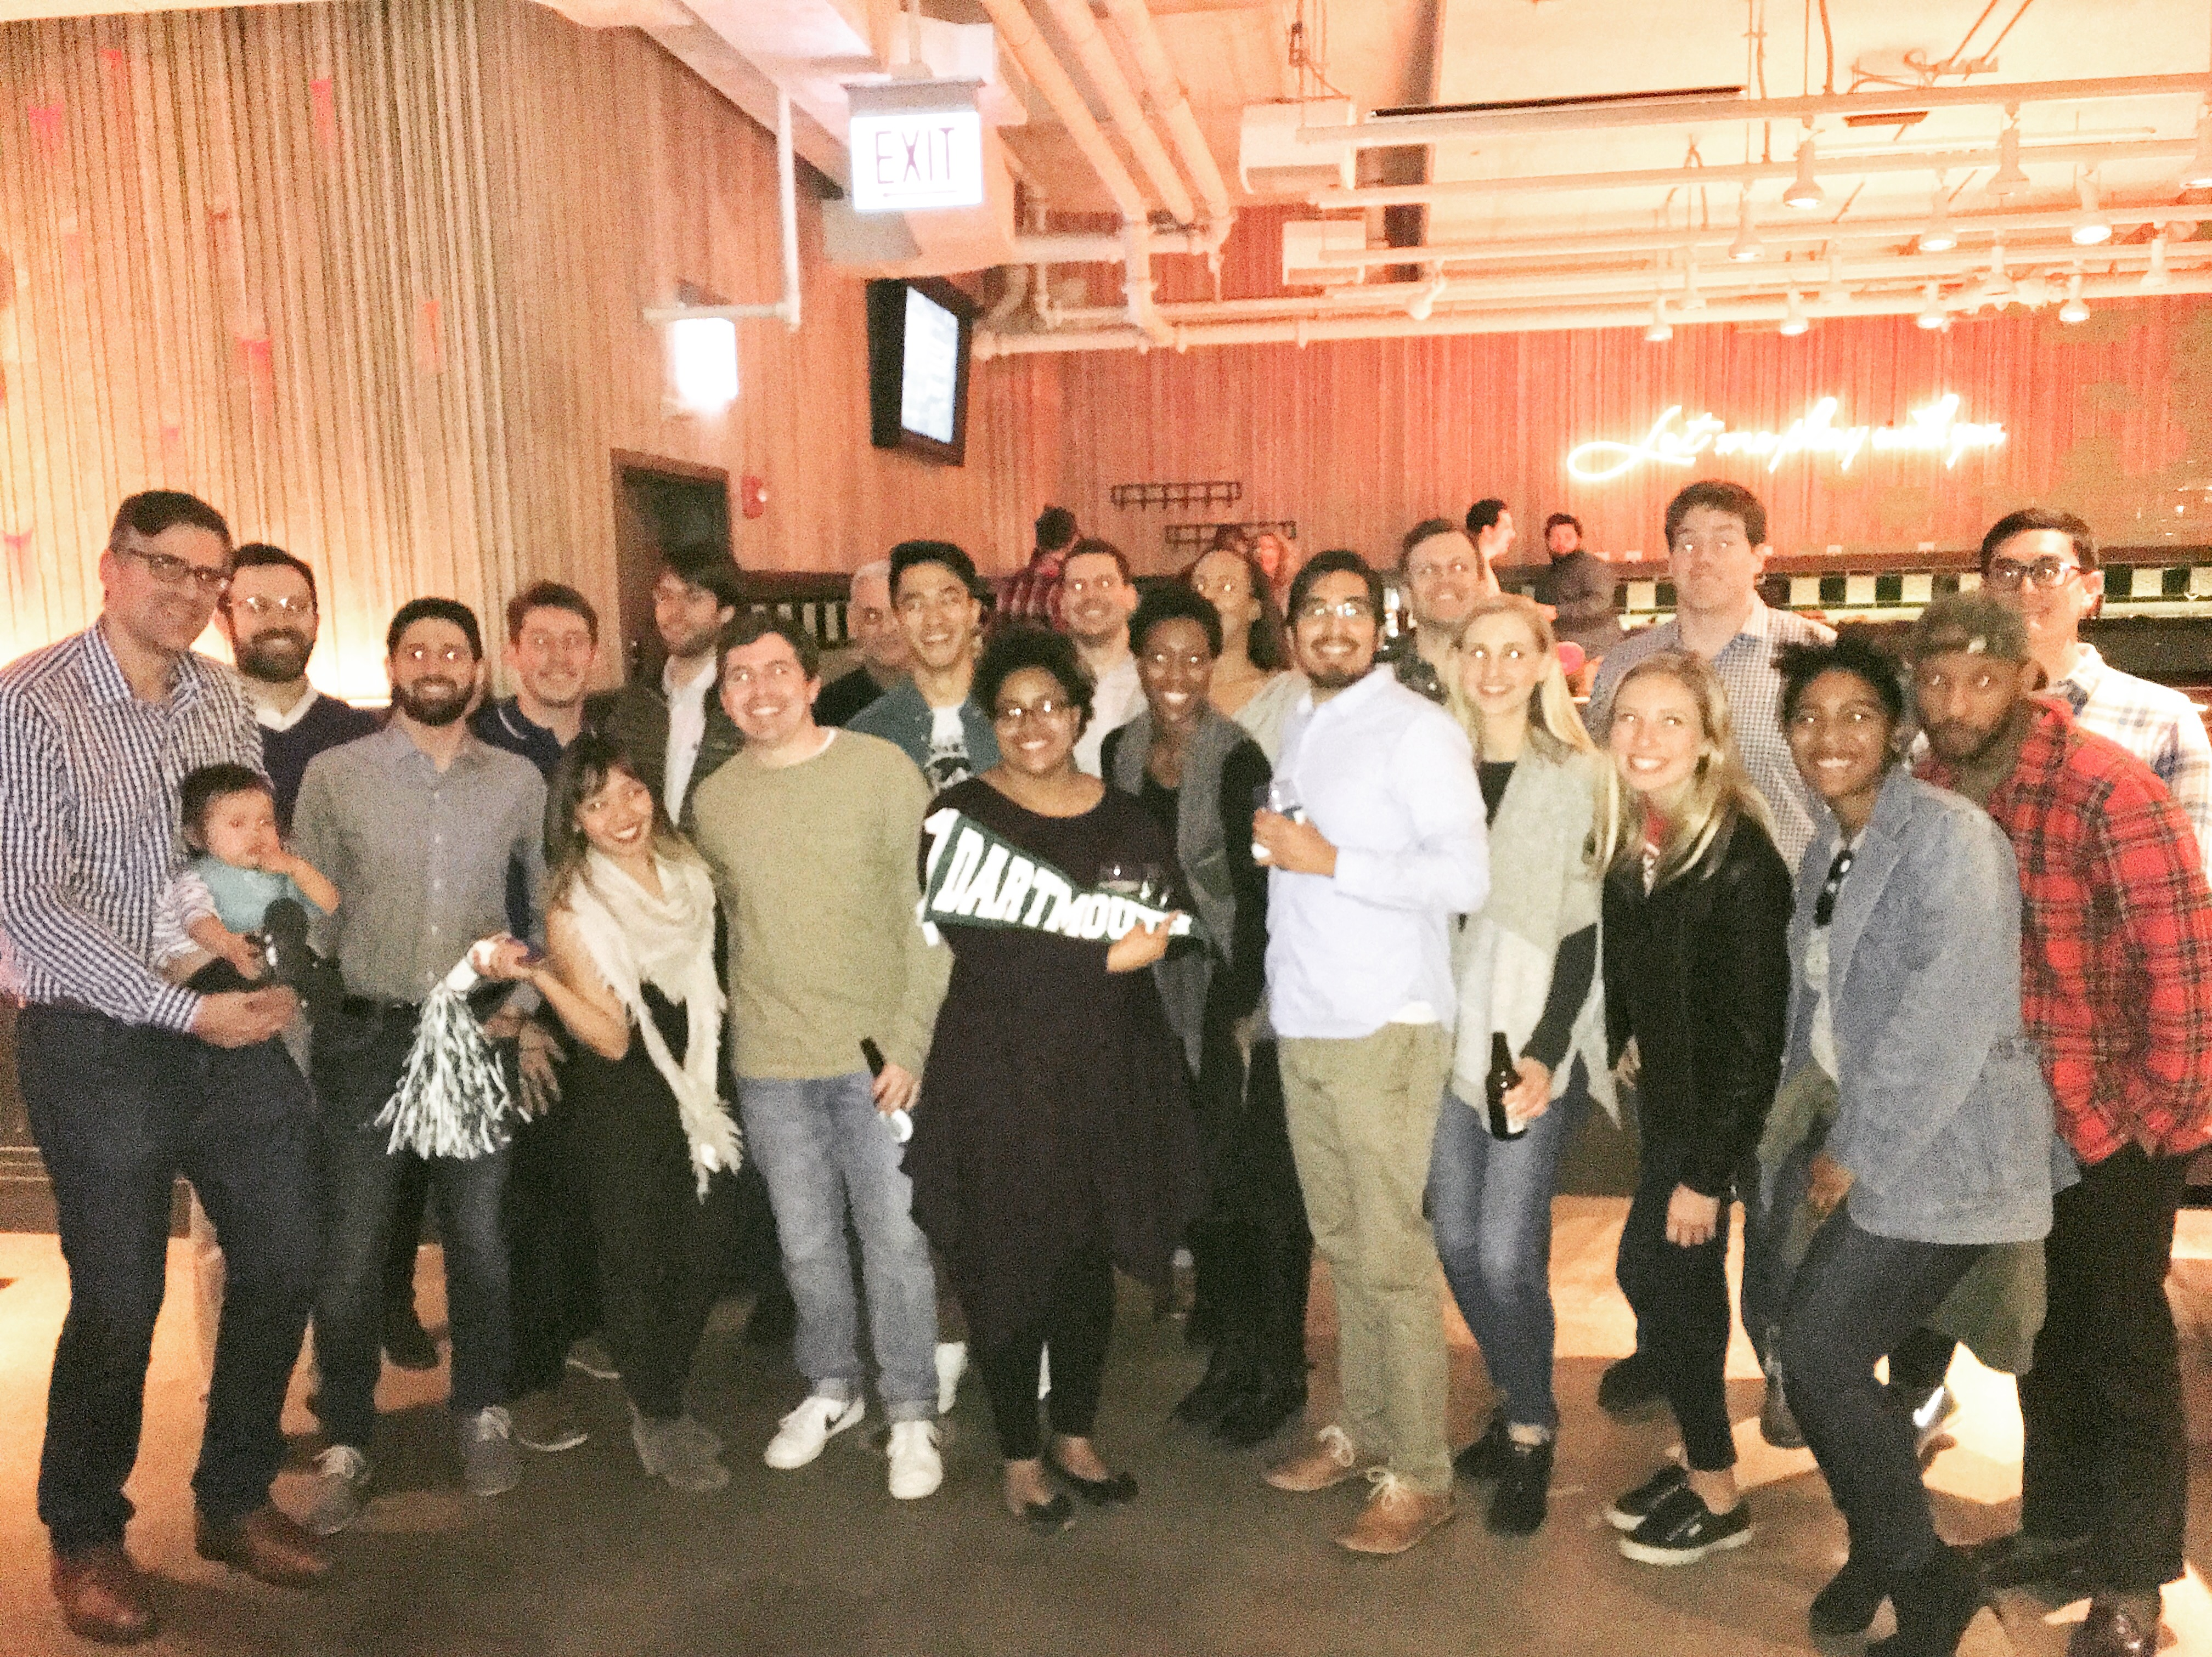 – Chicago alumni met up at AceBounce for games and appetizers